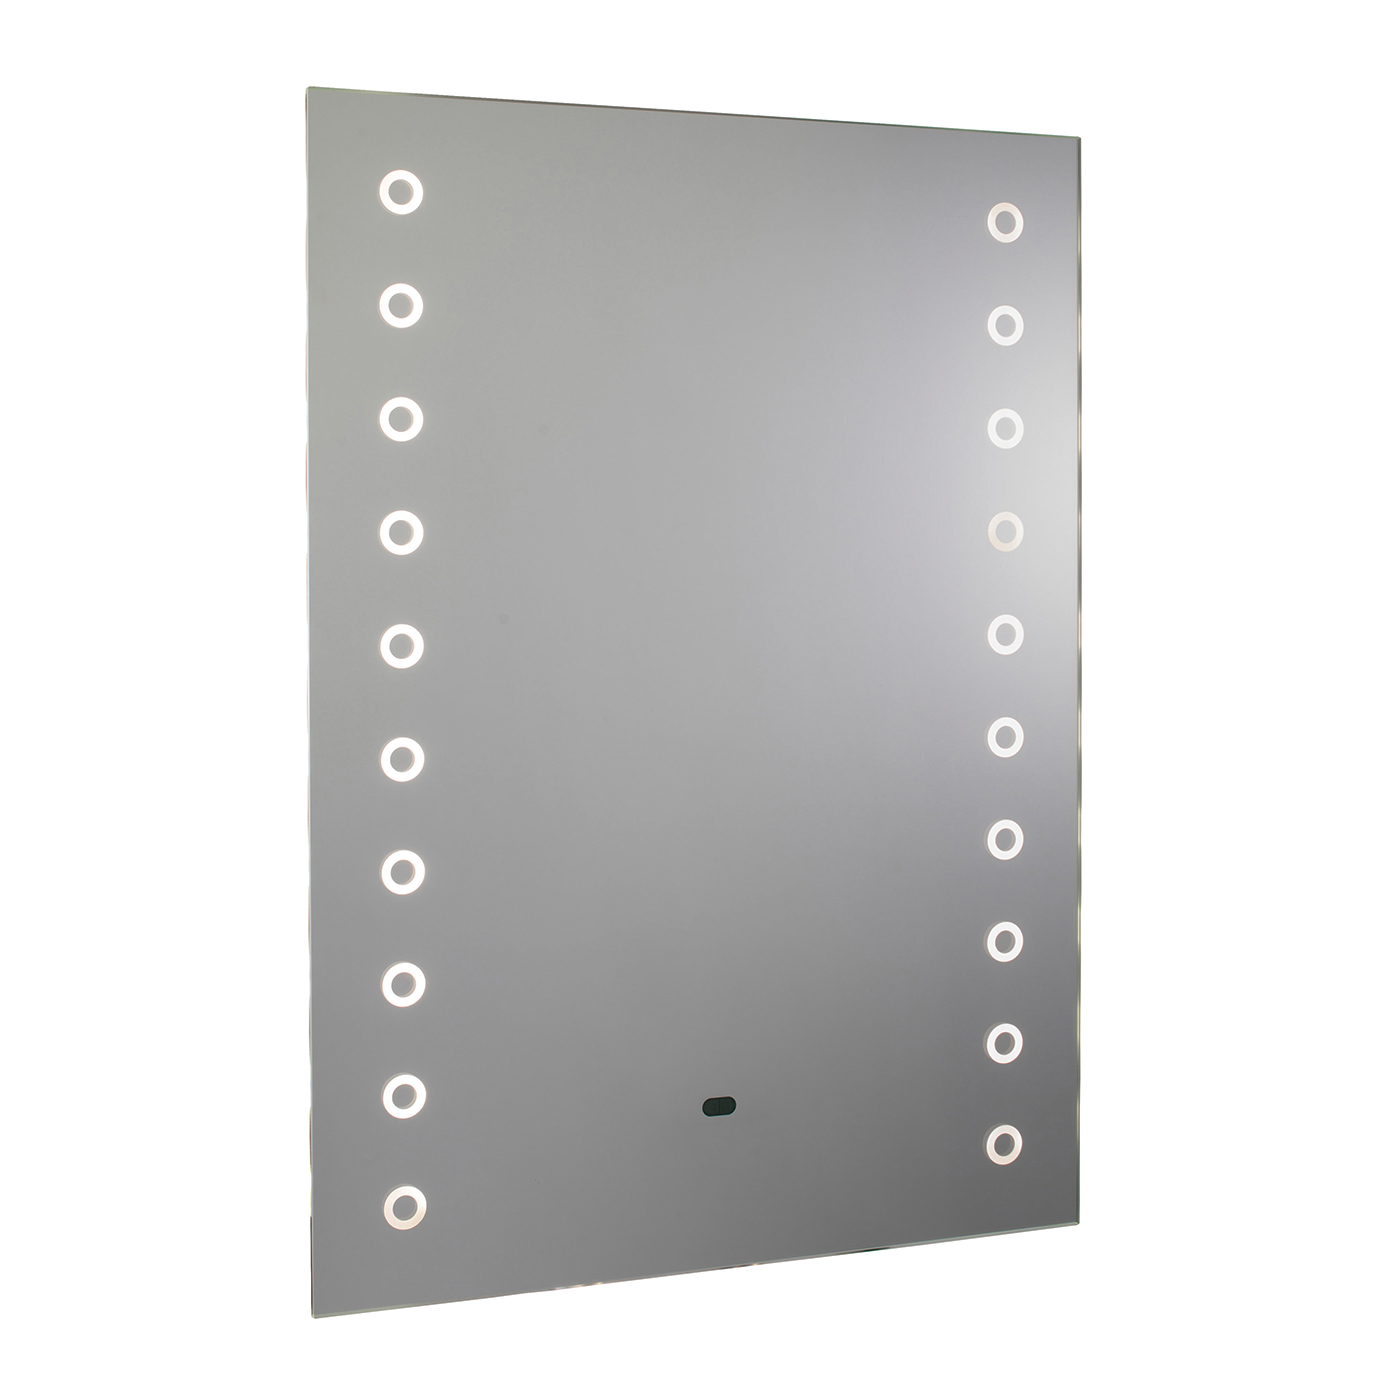 Endon Merle LED bathroom mirror IP44 10W sensor H: 700mm W: 500mm